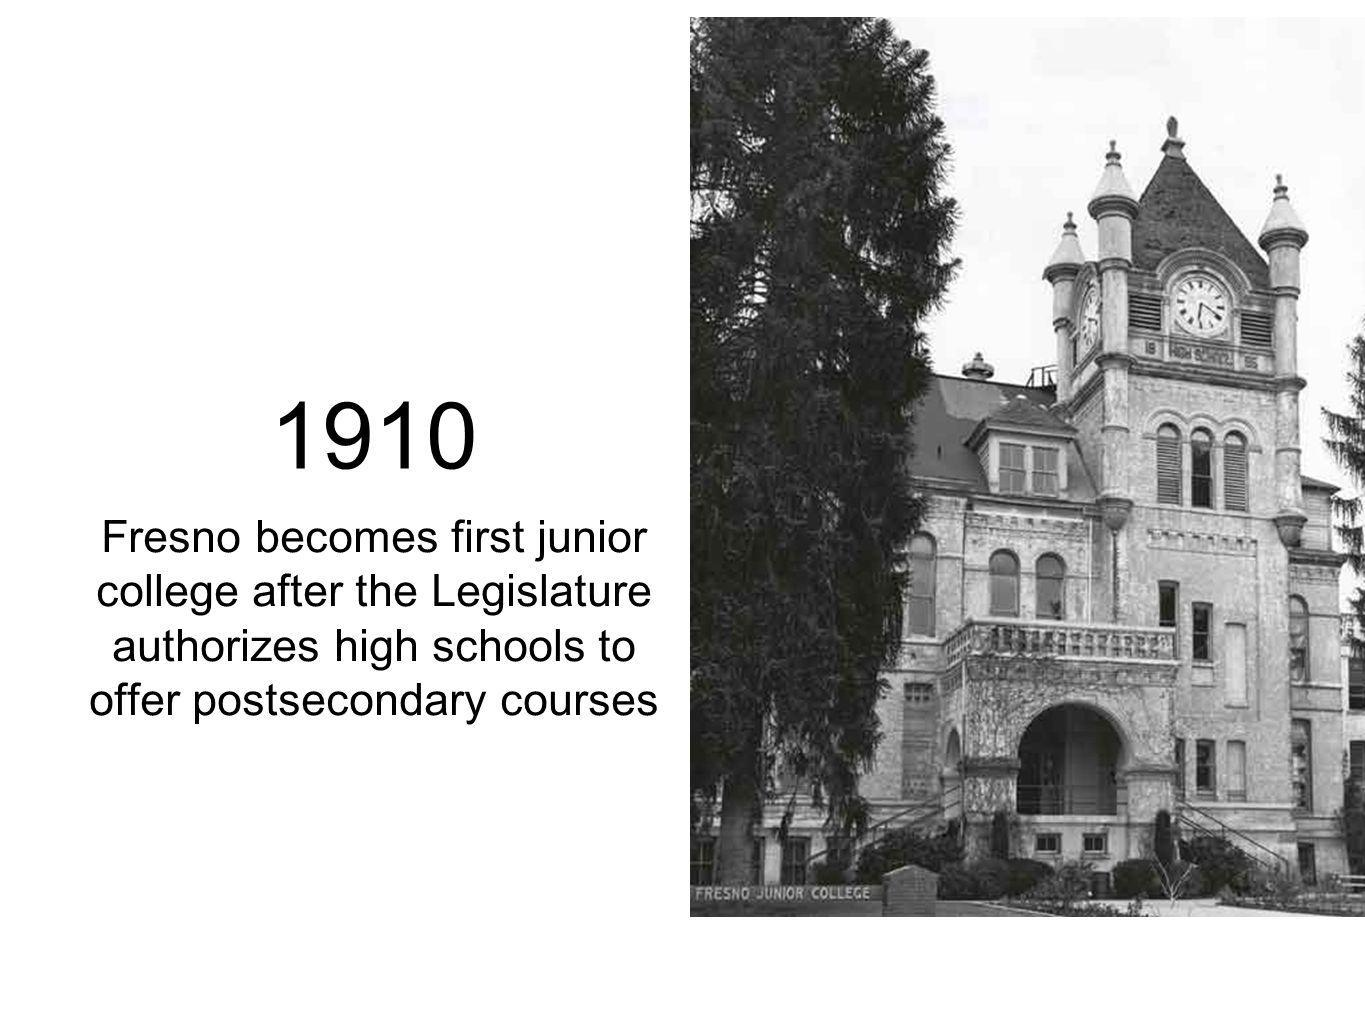 1910 Fresno becomes first junior college after the Legislature authorizes high schools to offer postsecondary courses